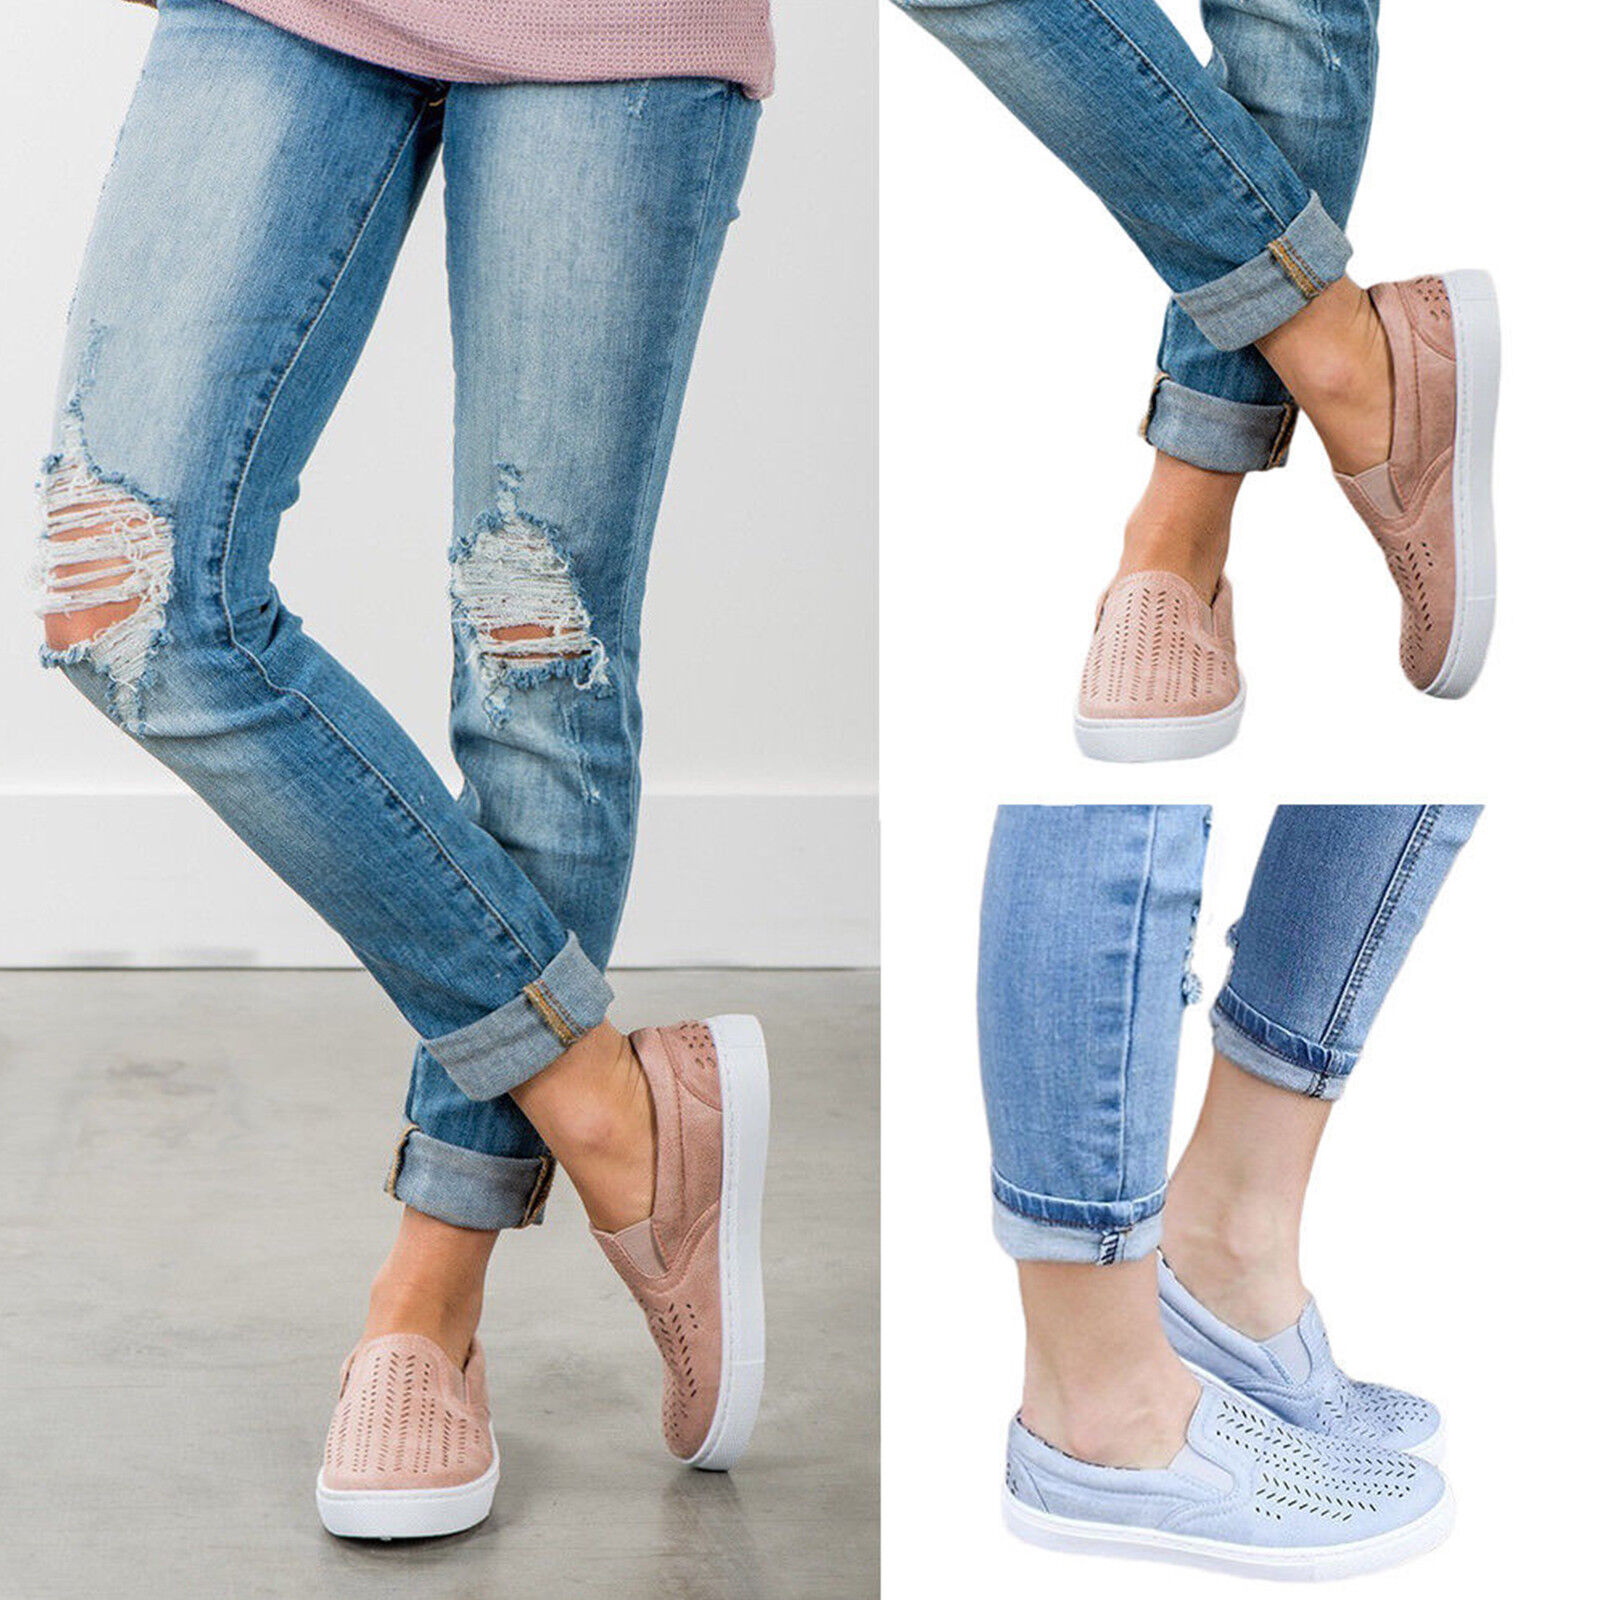 Women Casual Comfort Canvas Shoes Plimsolls Flats Slip On Loafers Sneakers Pumps 1